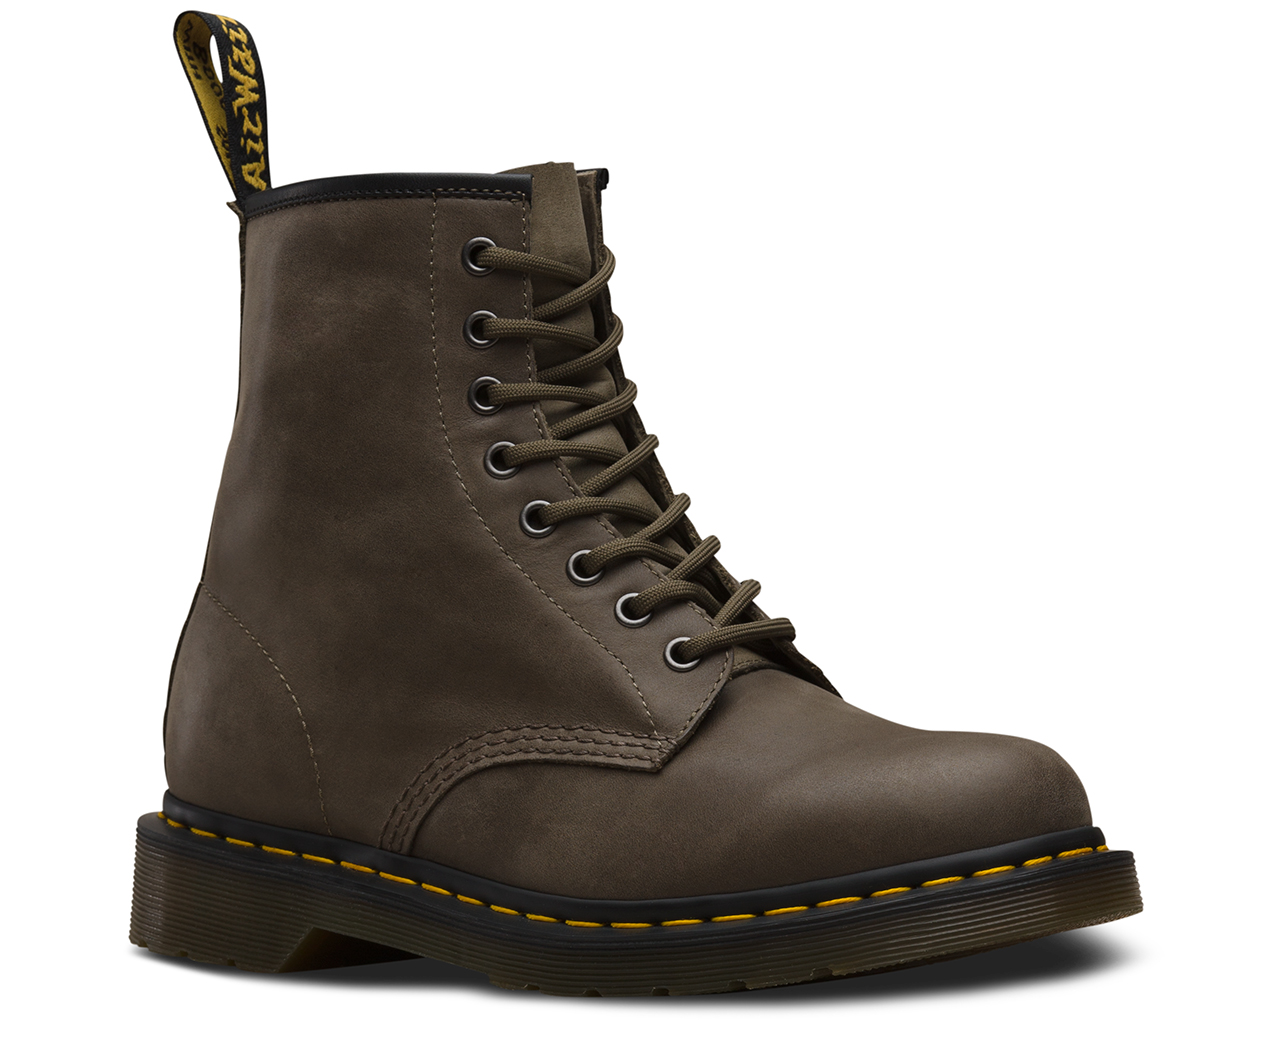 1460 Dusky 1460 8 Eye Boots Dr Martens Official